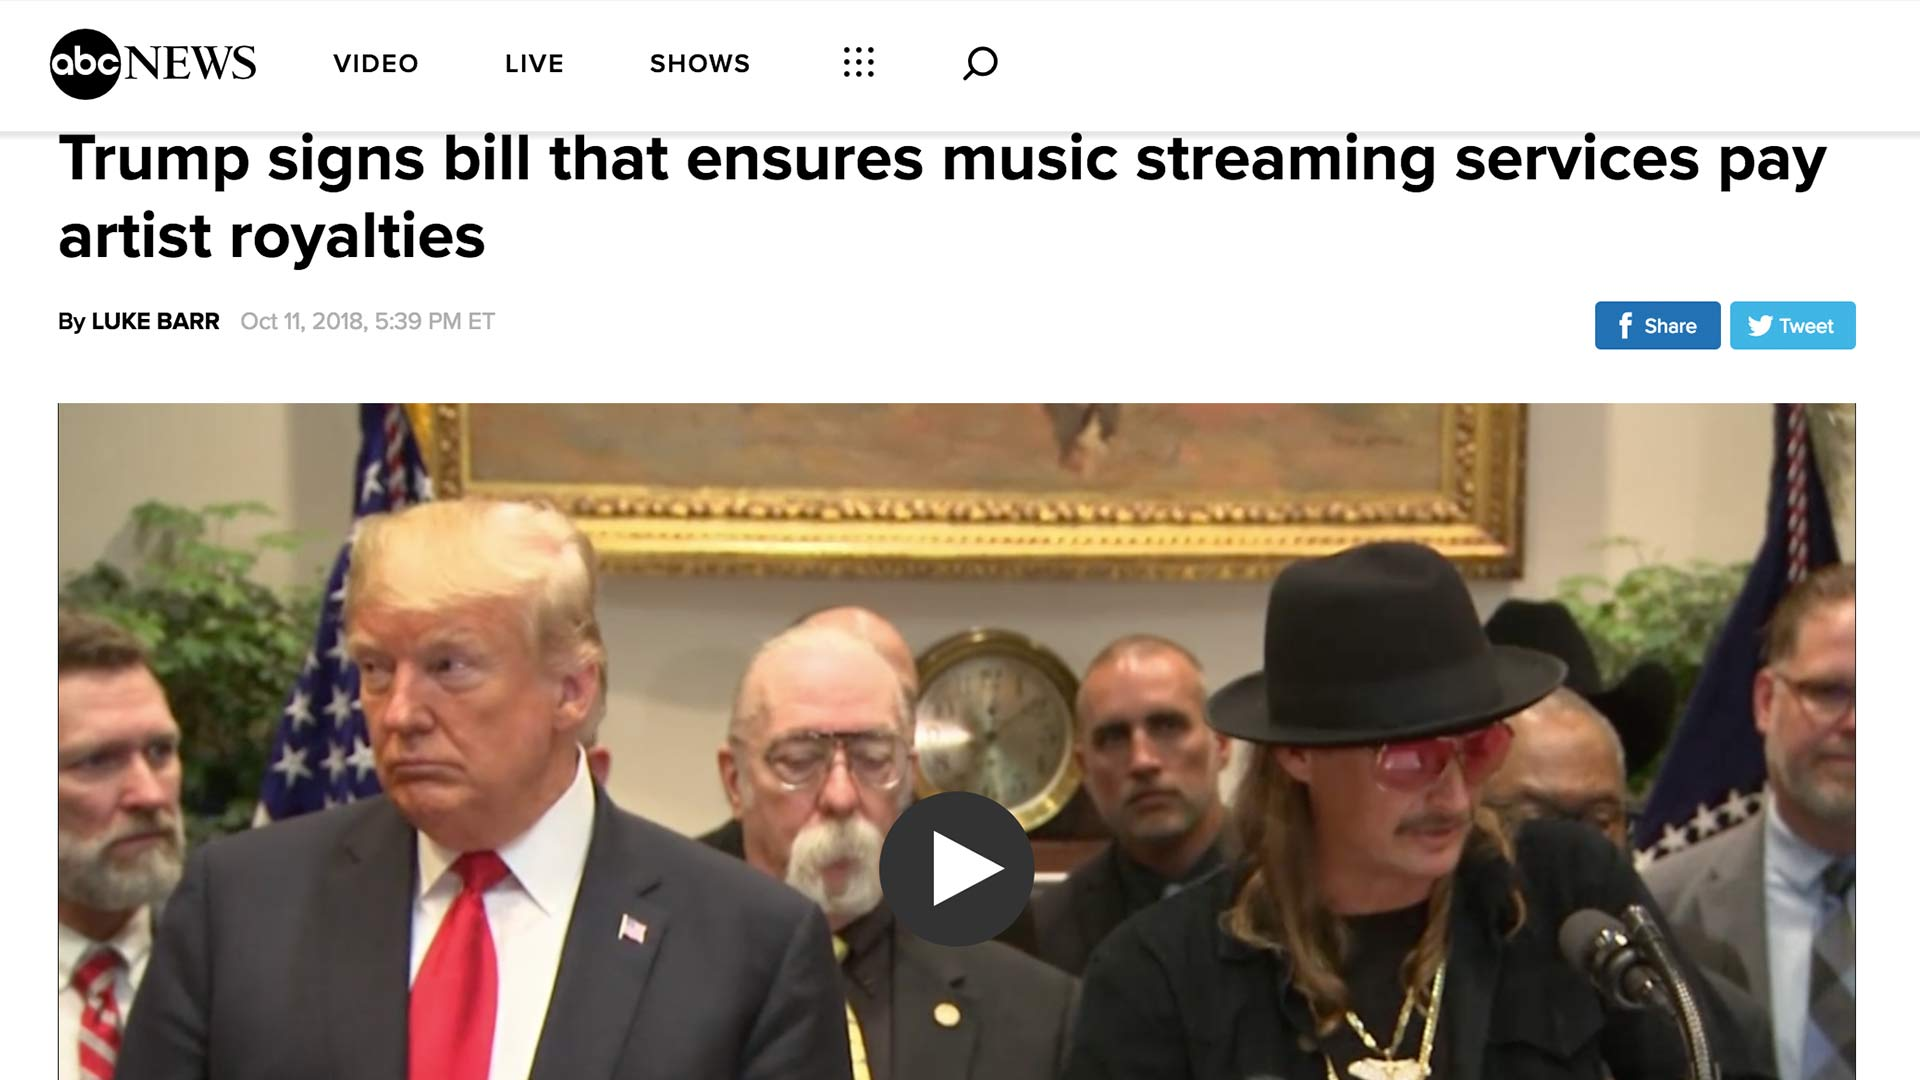 Fairness Rocks News Trump signs bill that ensures music streaming services pay artist royalties